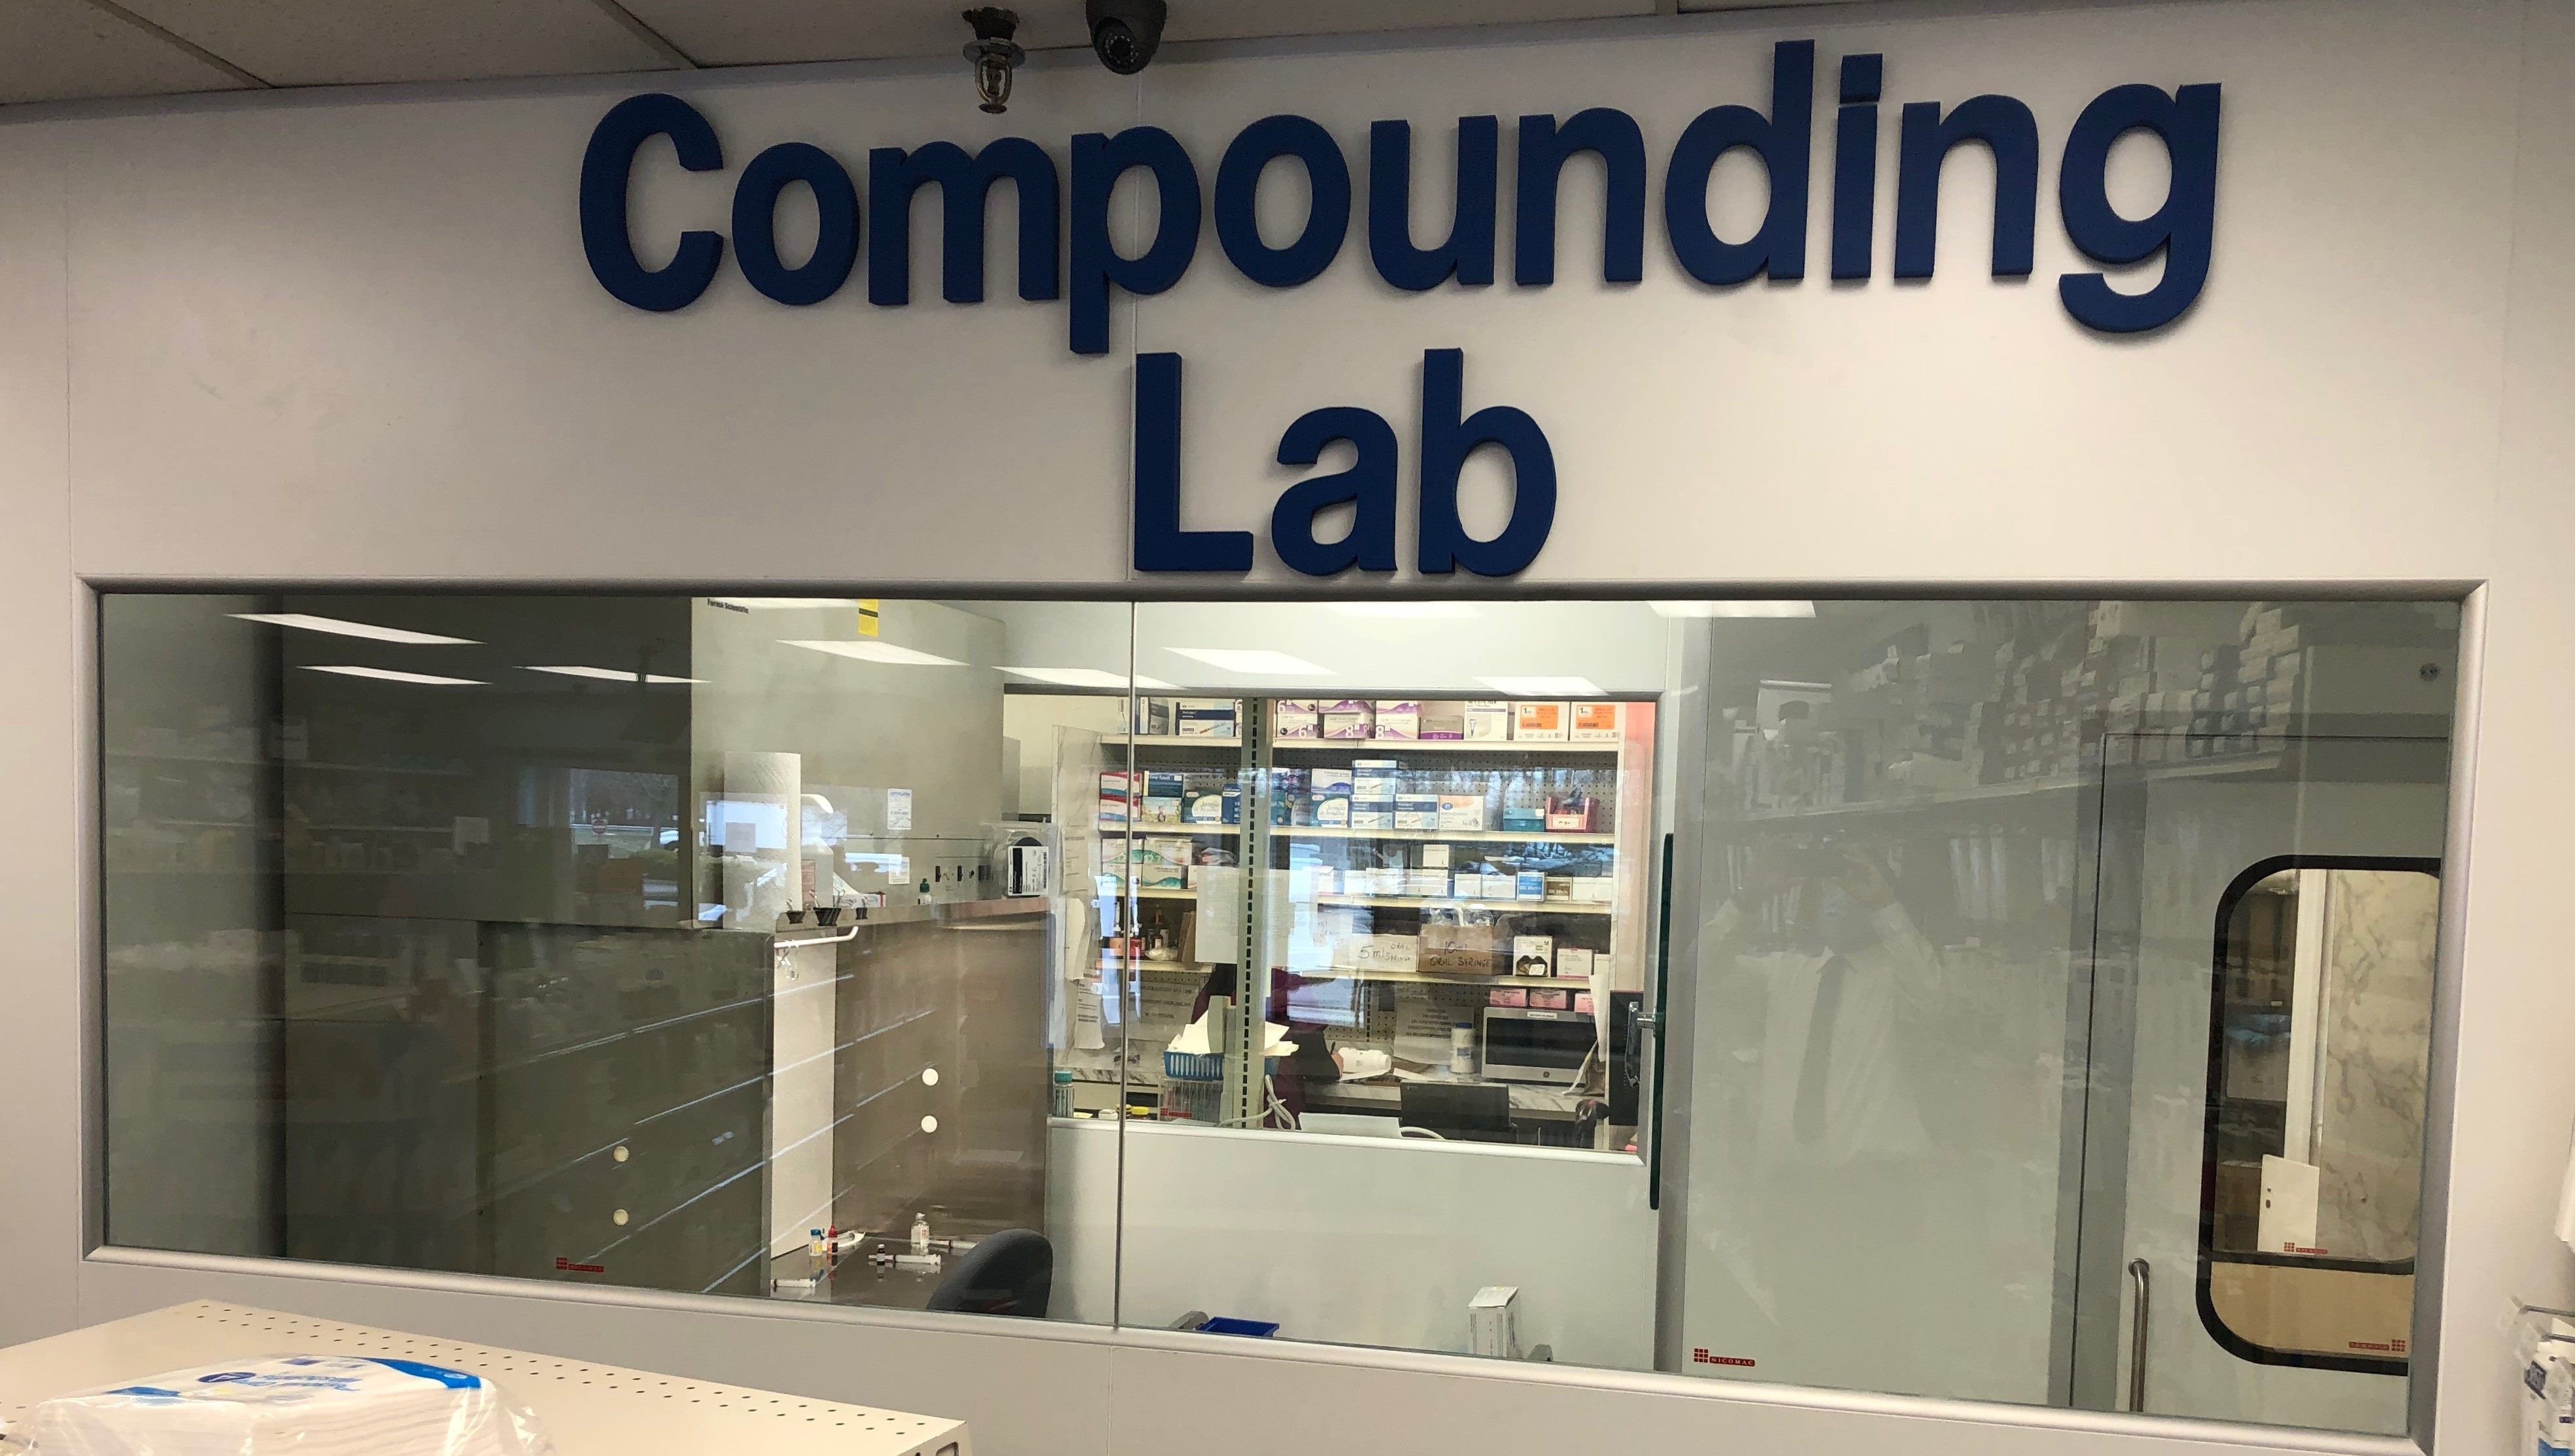 cleanroom glass wall to make the cleanroom lab visible for customers